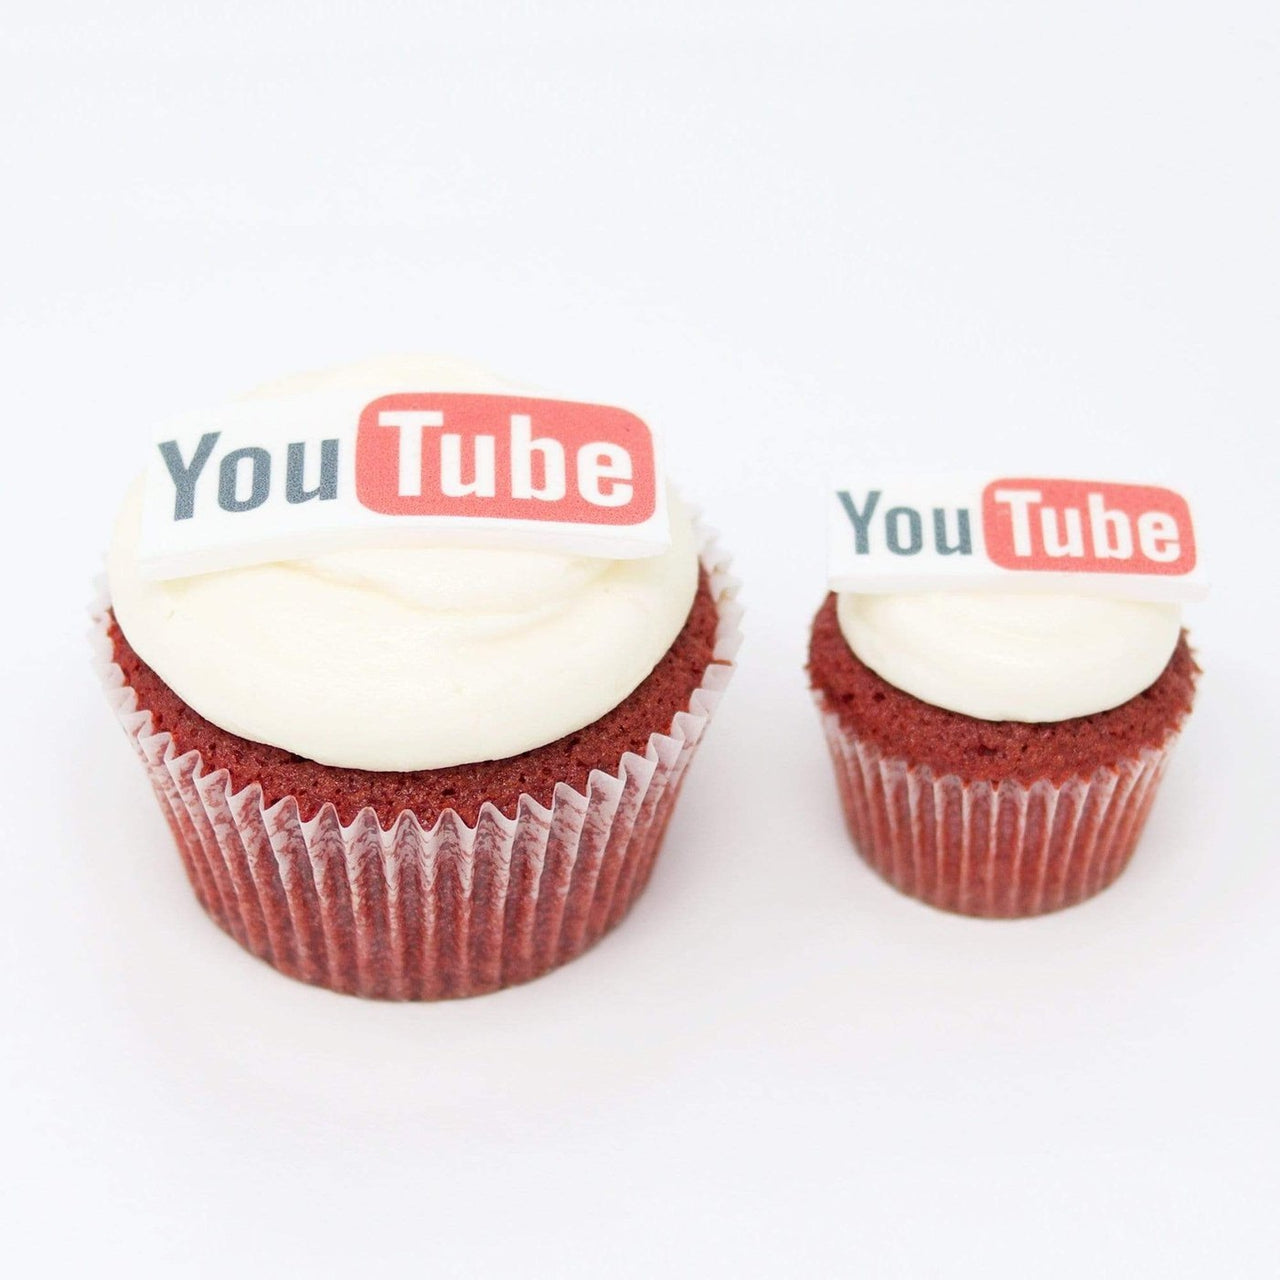 Red Velvet Cupcakes with logo